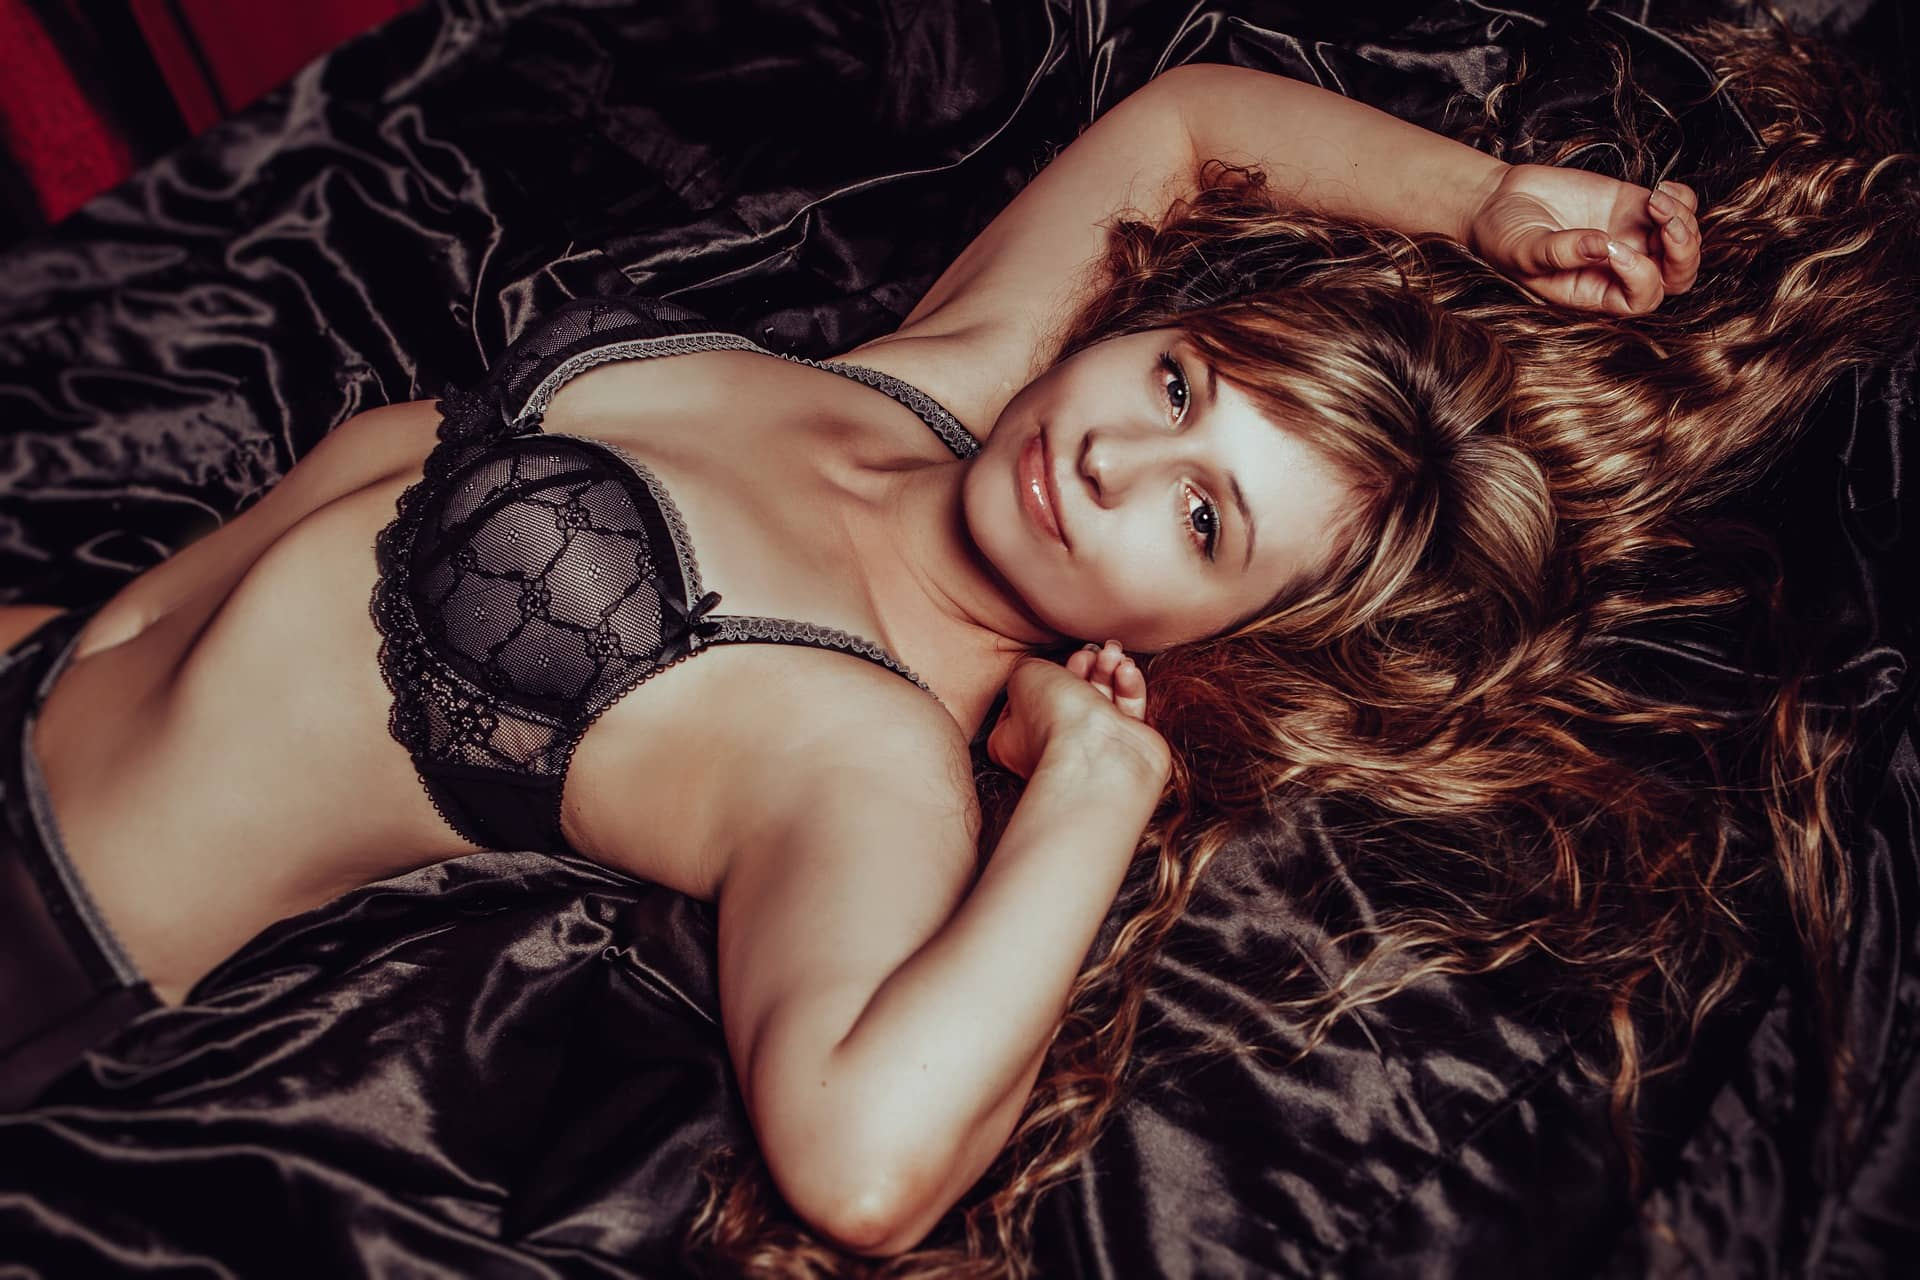 Beautiful russian woman Victoria Borodinova lying in her bed with her arms up wearing black lace lingerie showing her shaved armpits